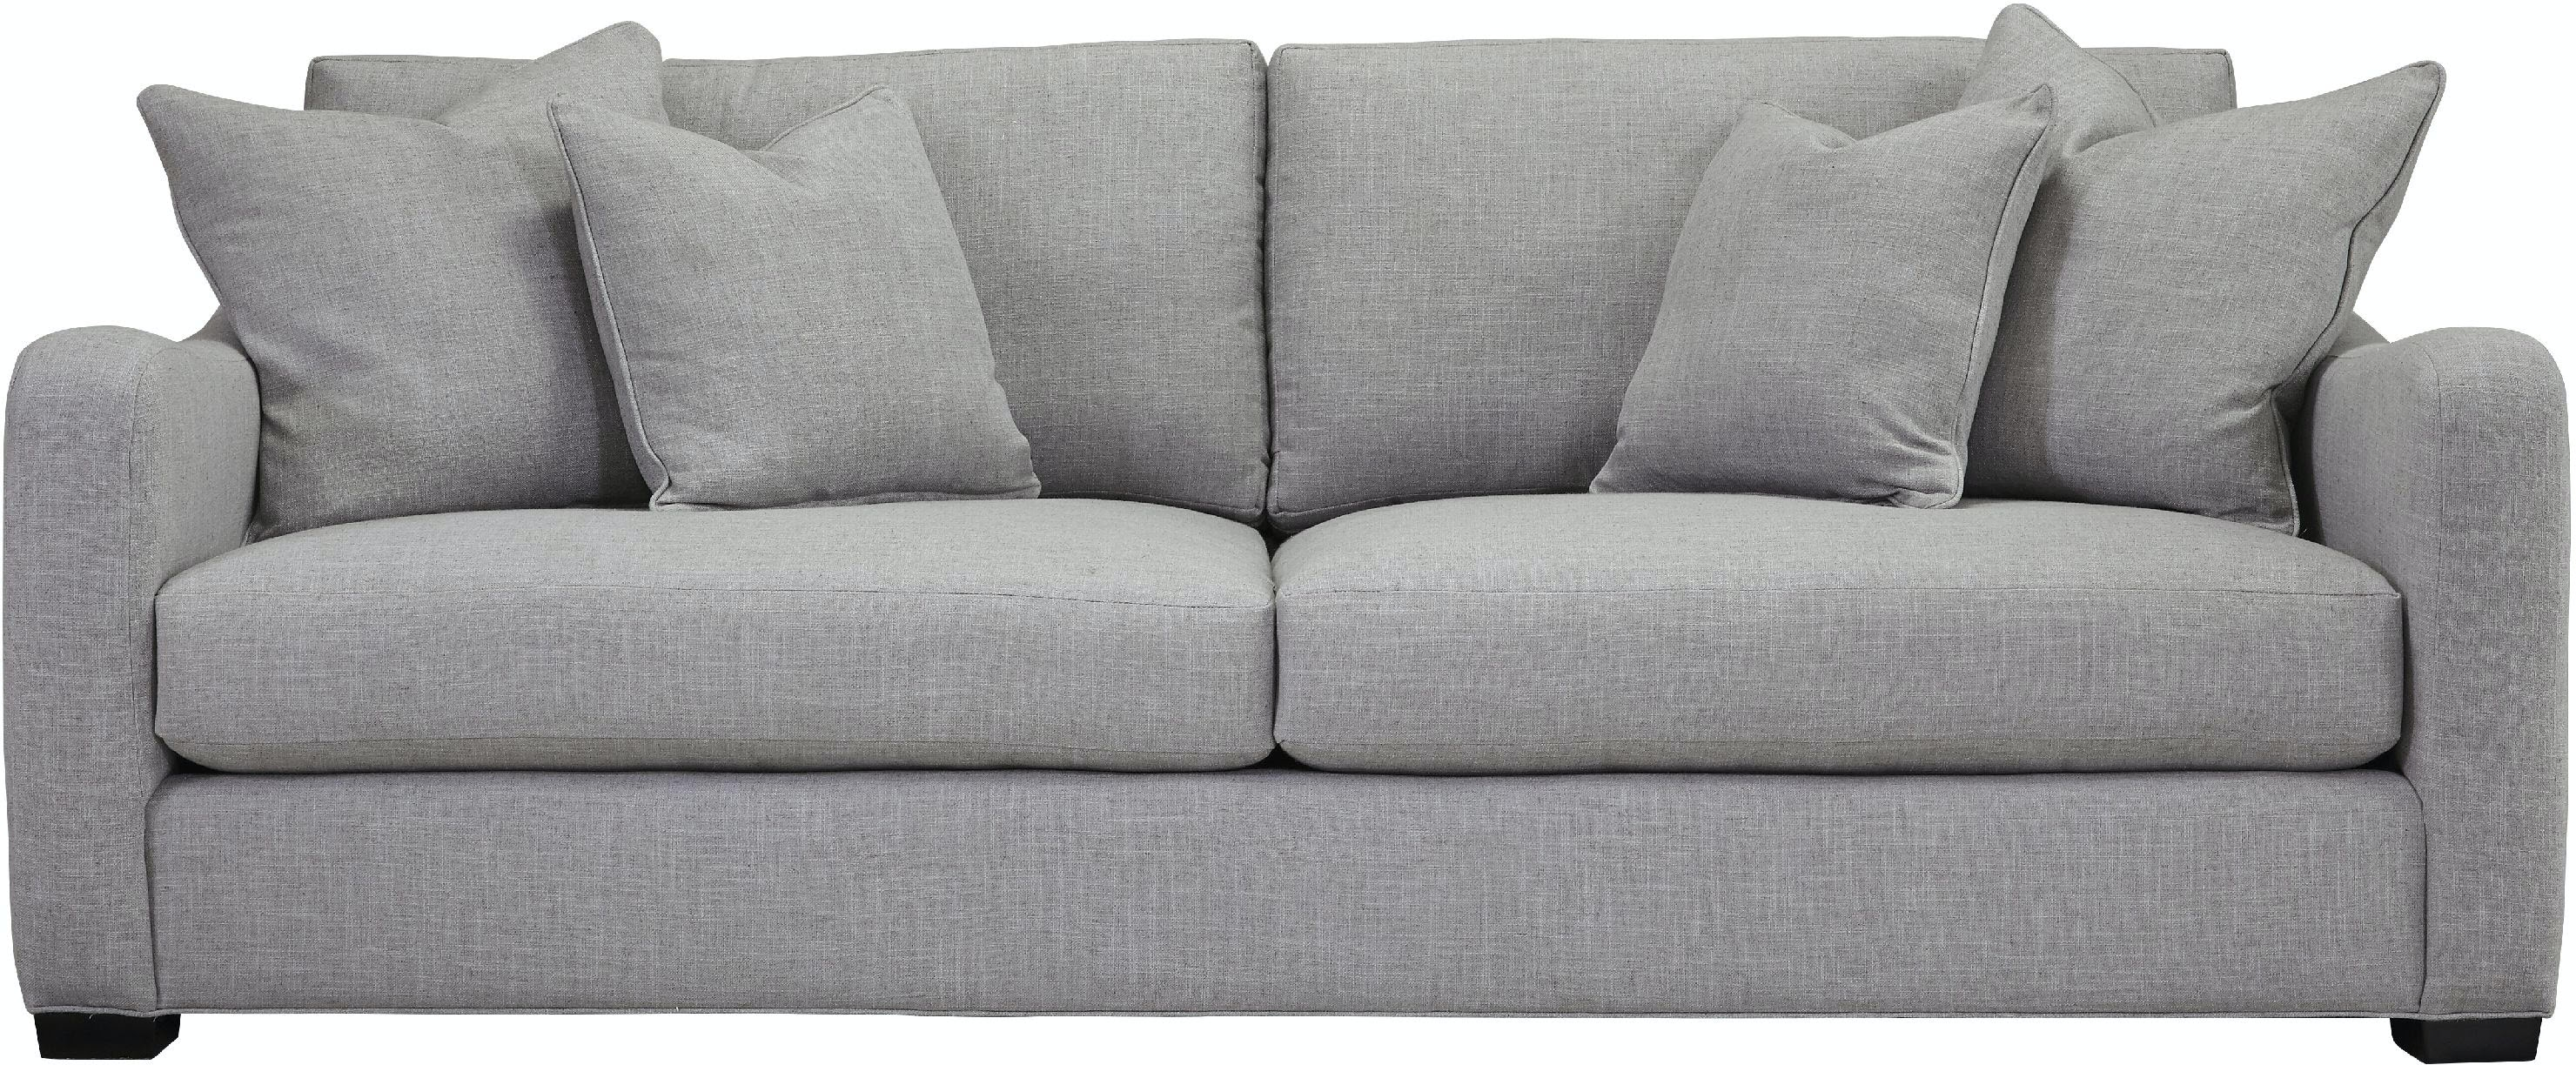 Southern Furniture Living Room Wiley Sofa Whitley